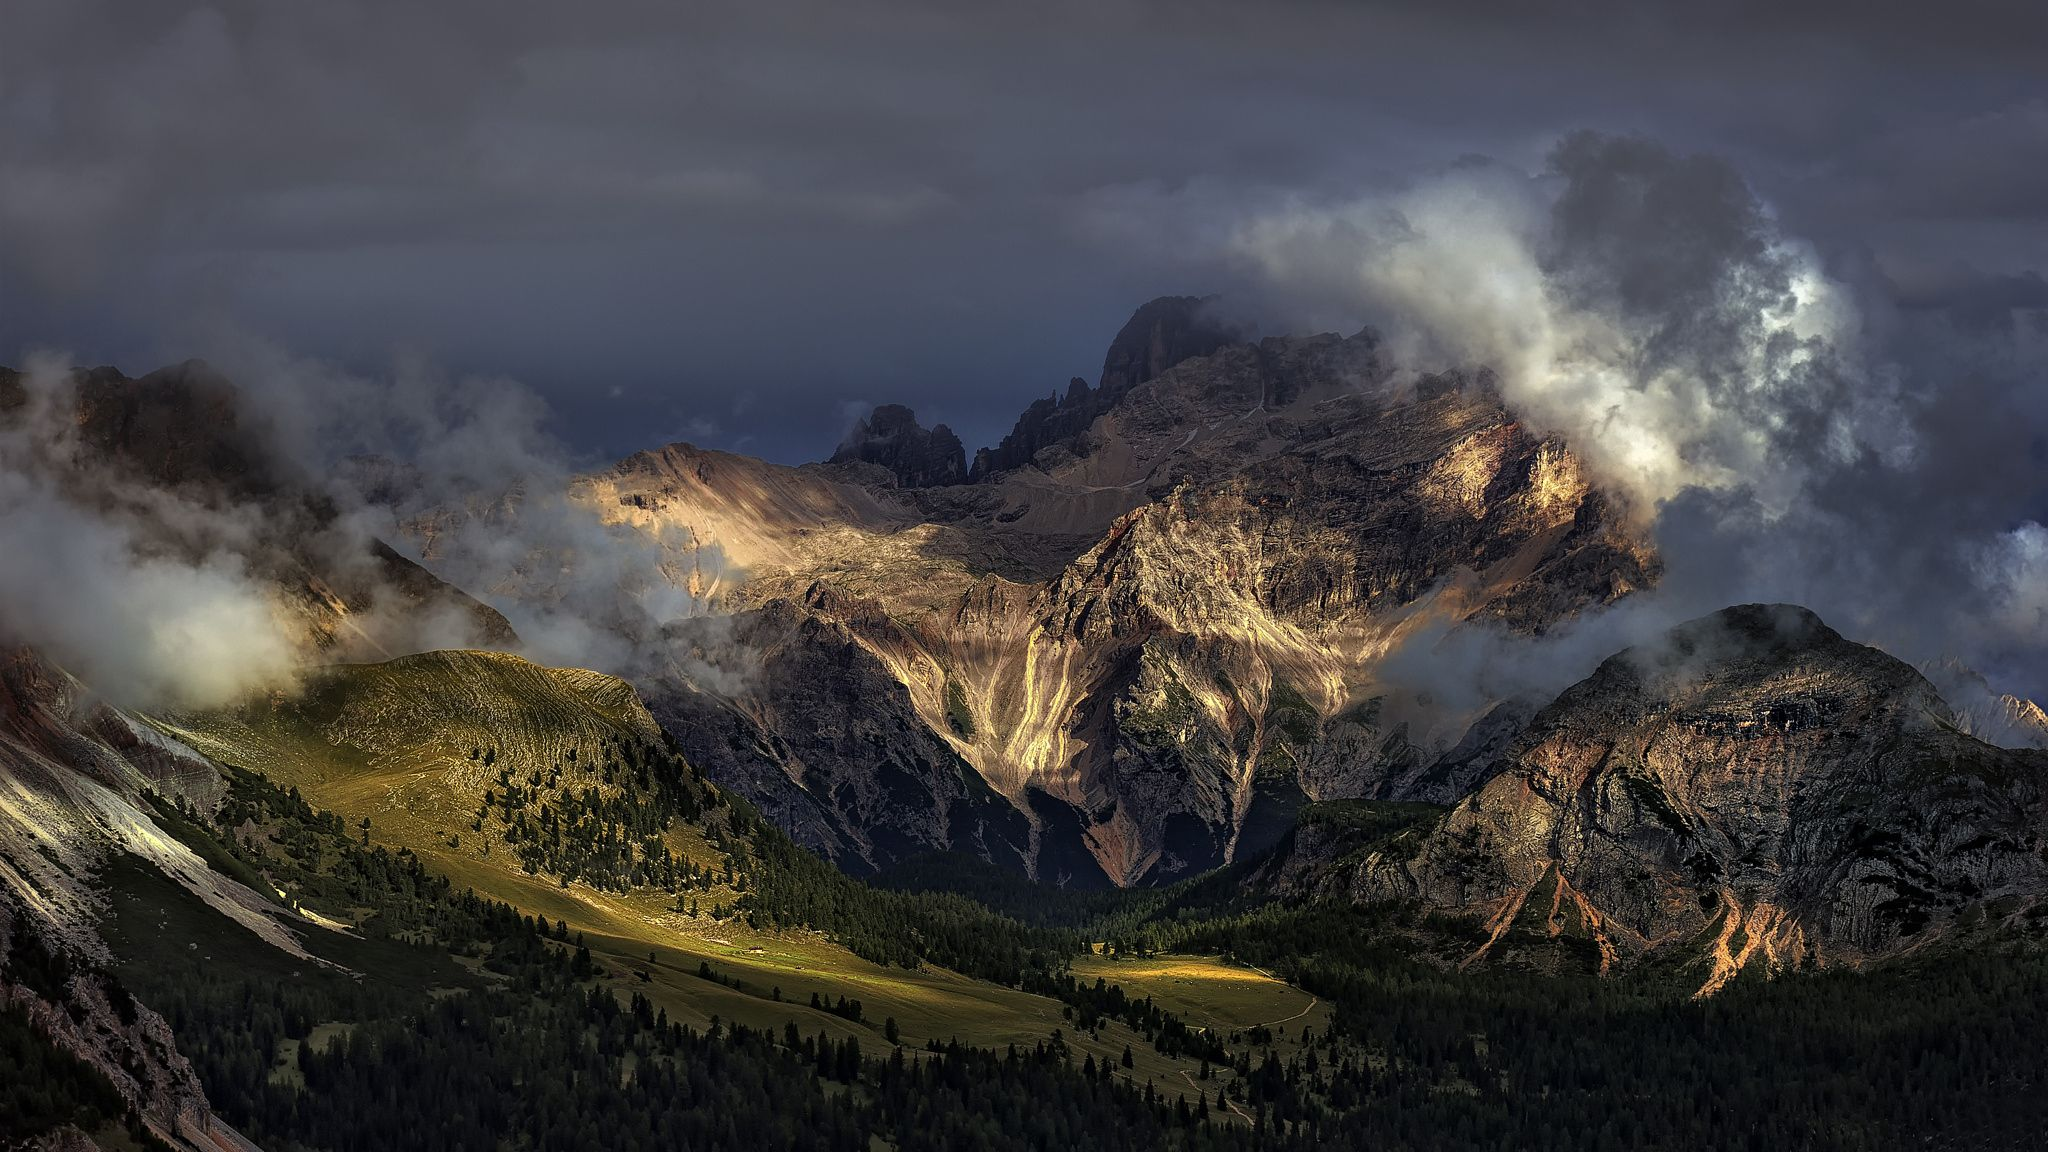 Between light and rocks dragon guards the valley by Paolo Maccagnan